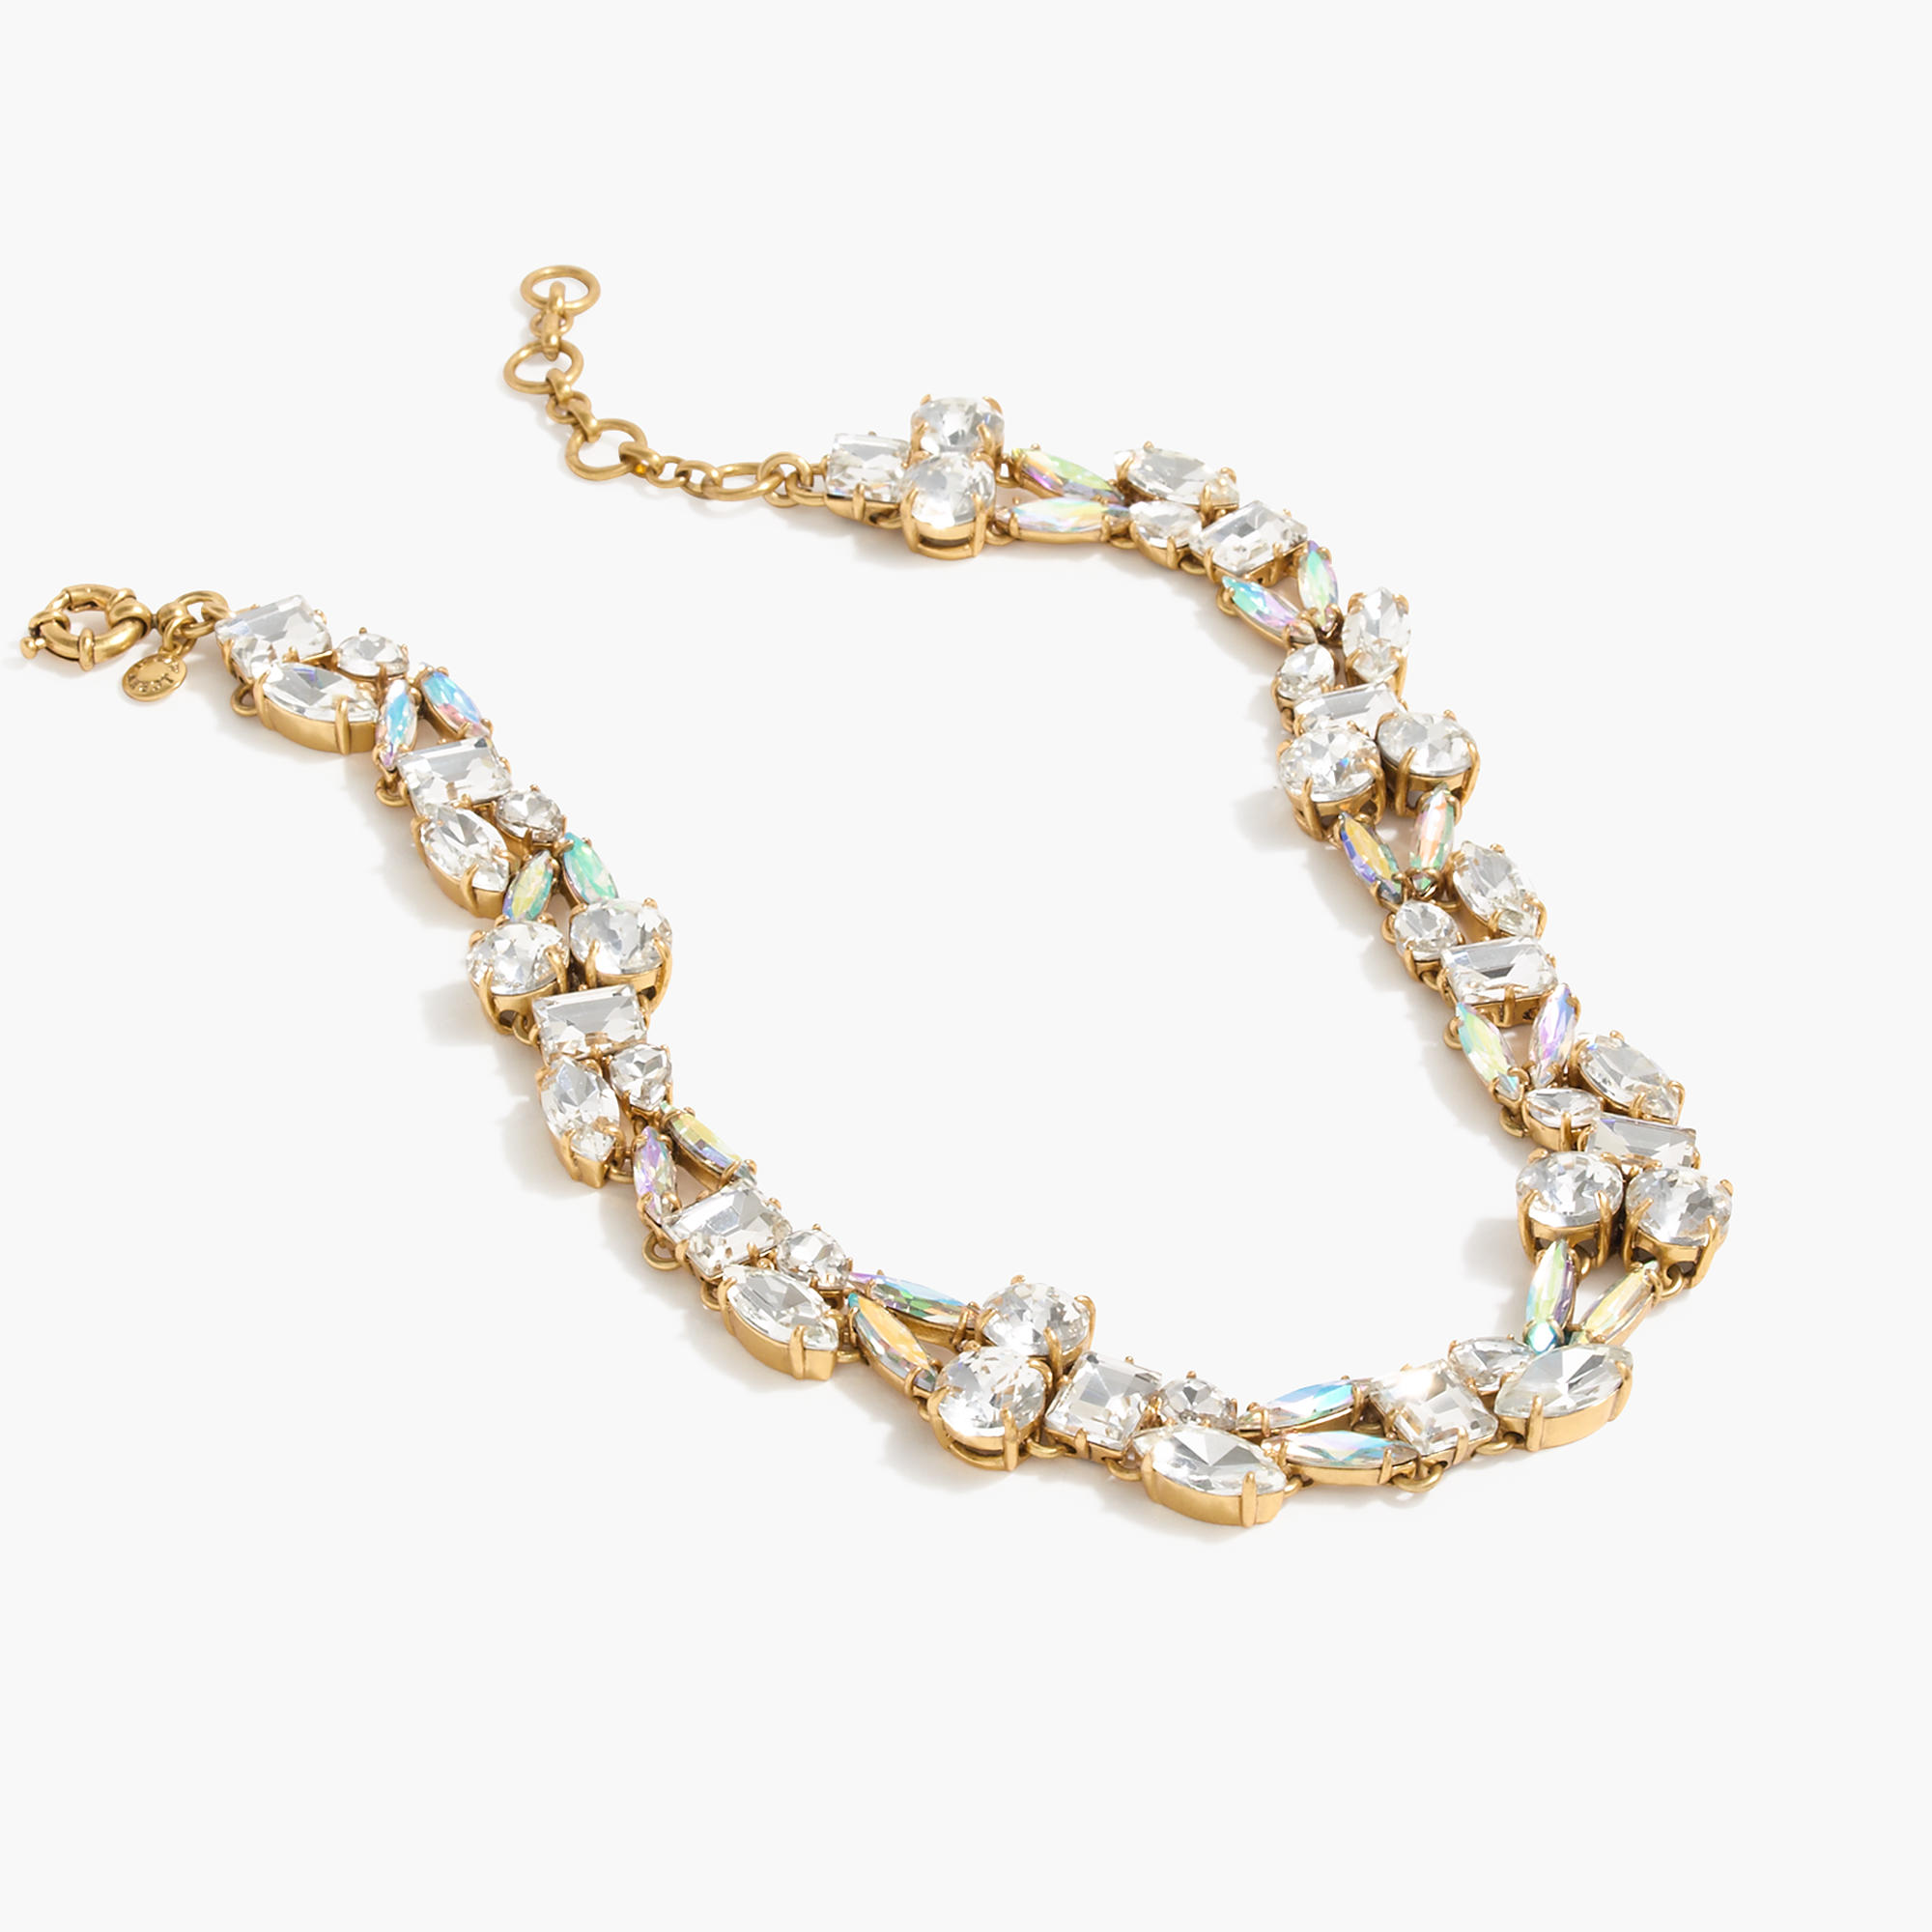 Mixed crystal necklace j crew for J crew jewelry 2015